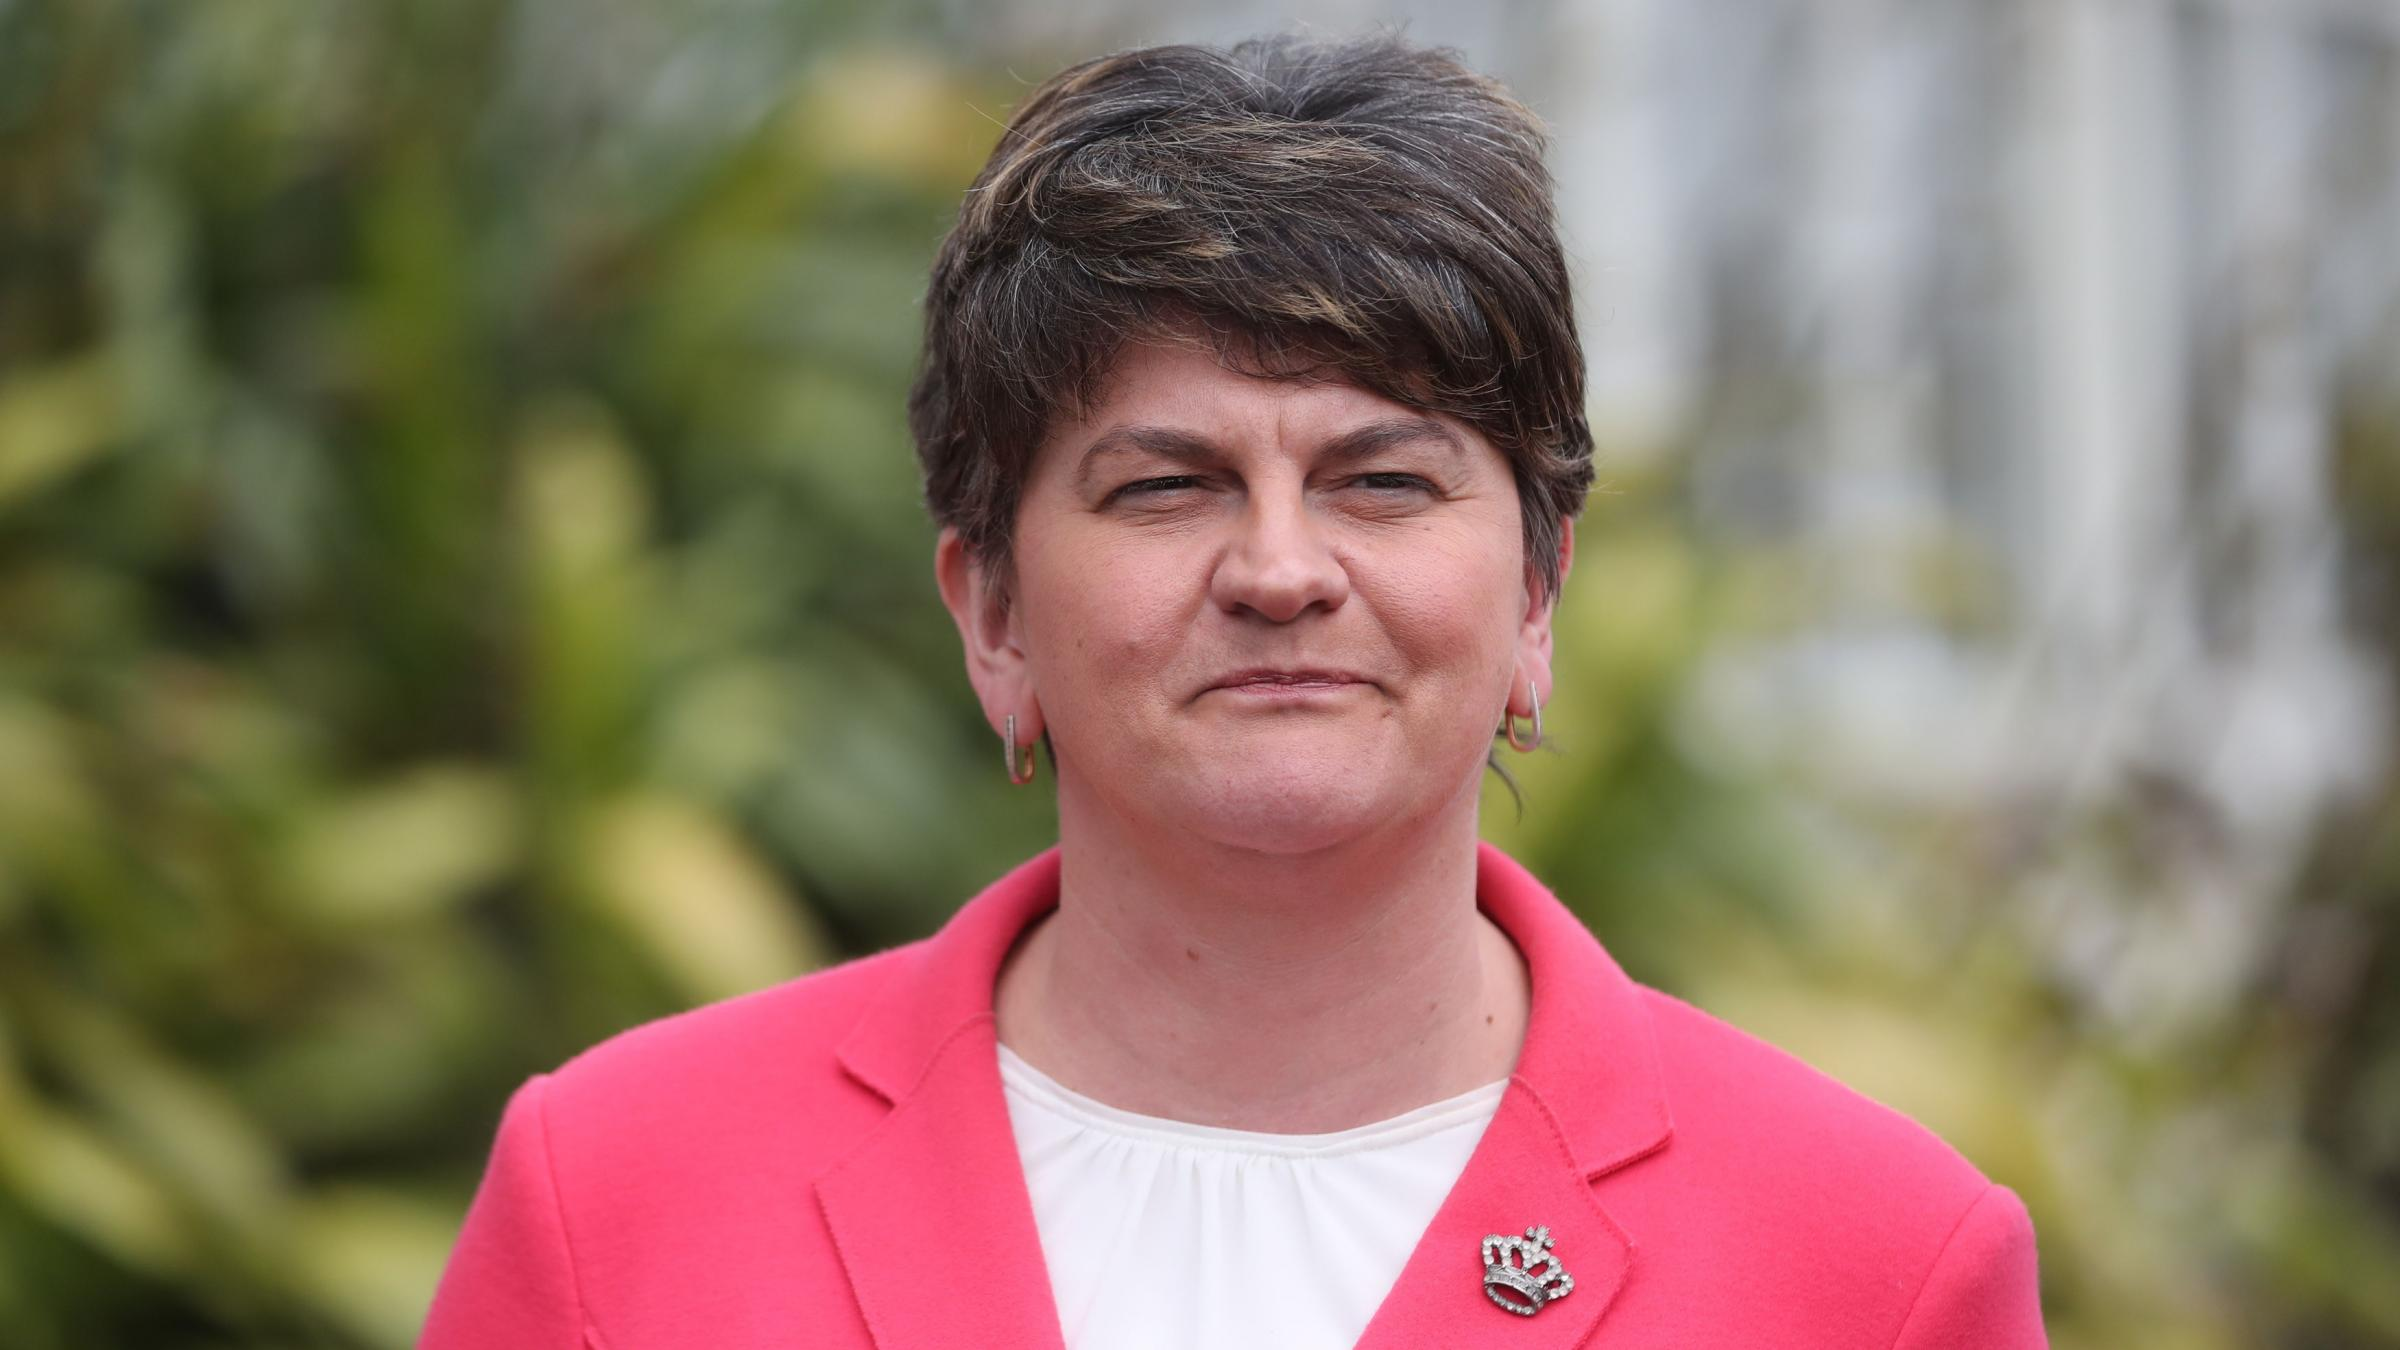 Election result 2017: DUP-Tory deal announcement due